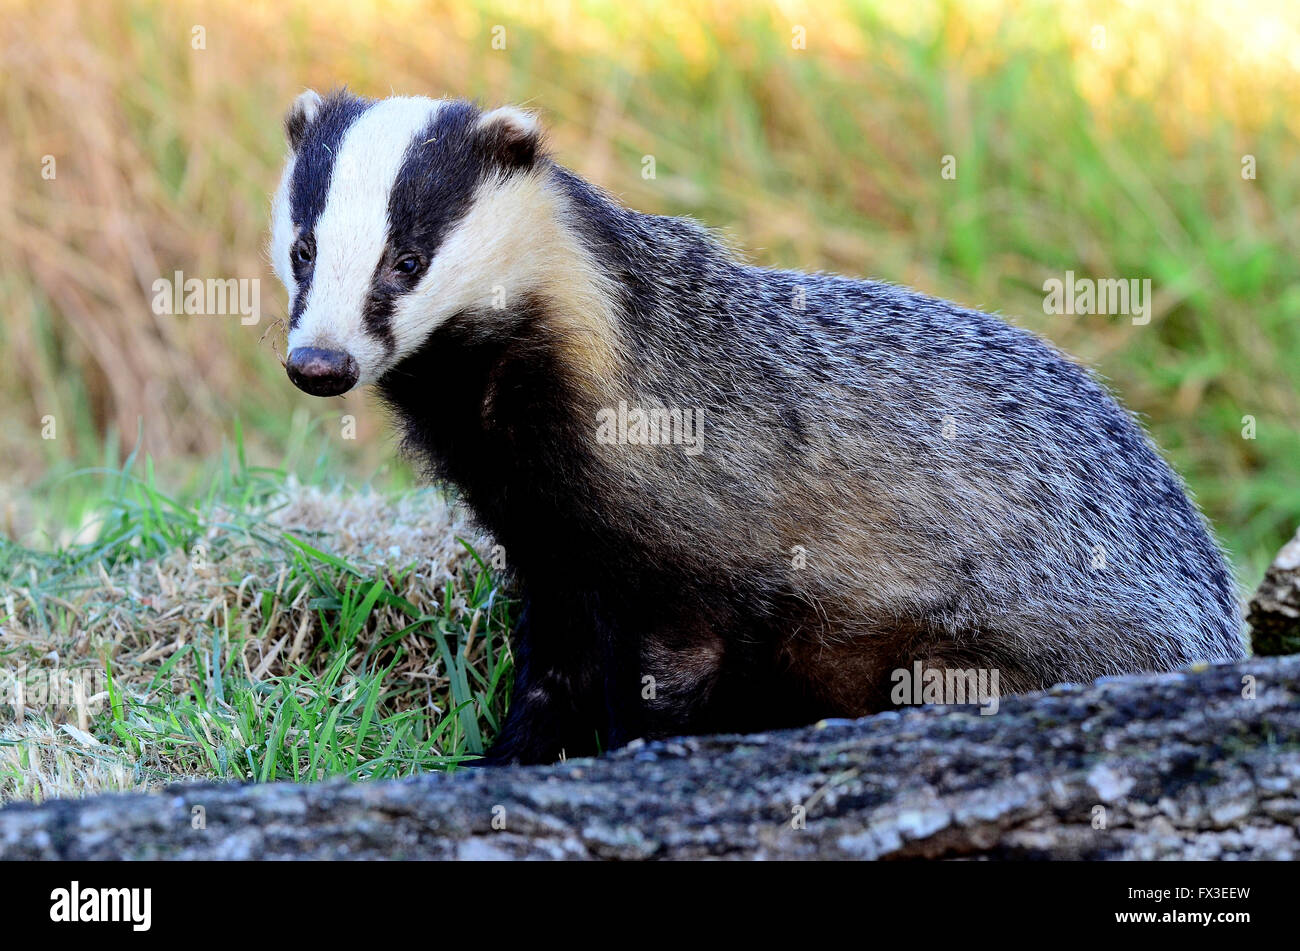 Adult badger at sunset. Dorset, UK Stock Photo